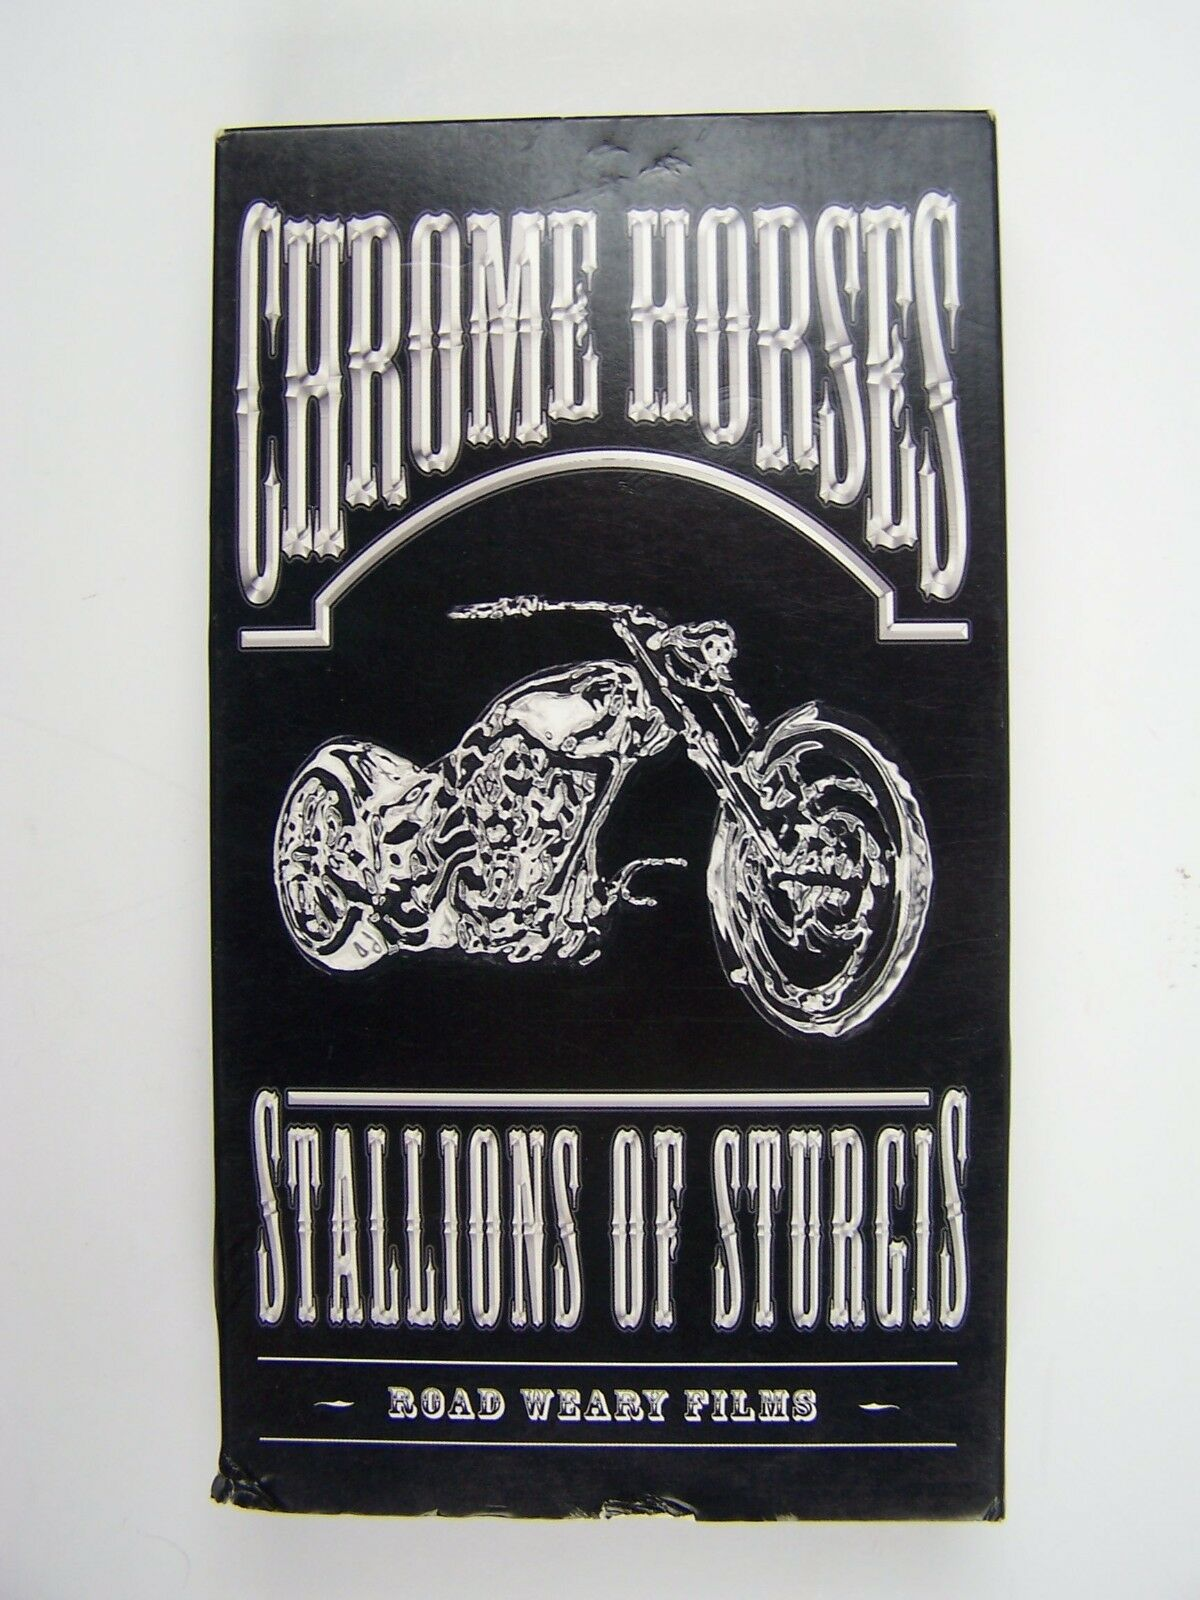 Chrome Horses - Stallions Of Sturgis Road Weary Films V